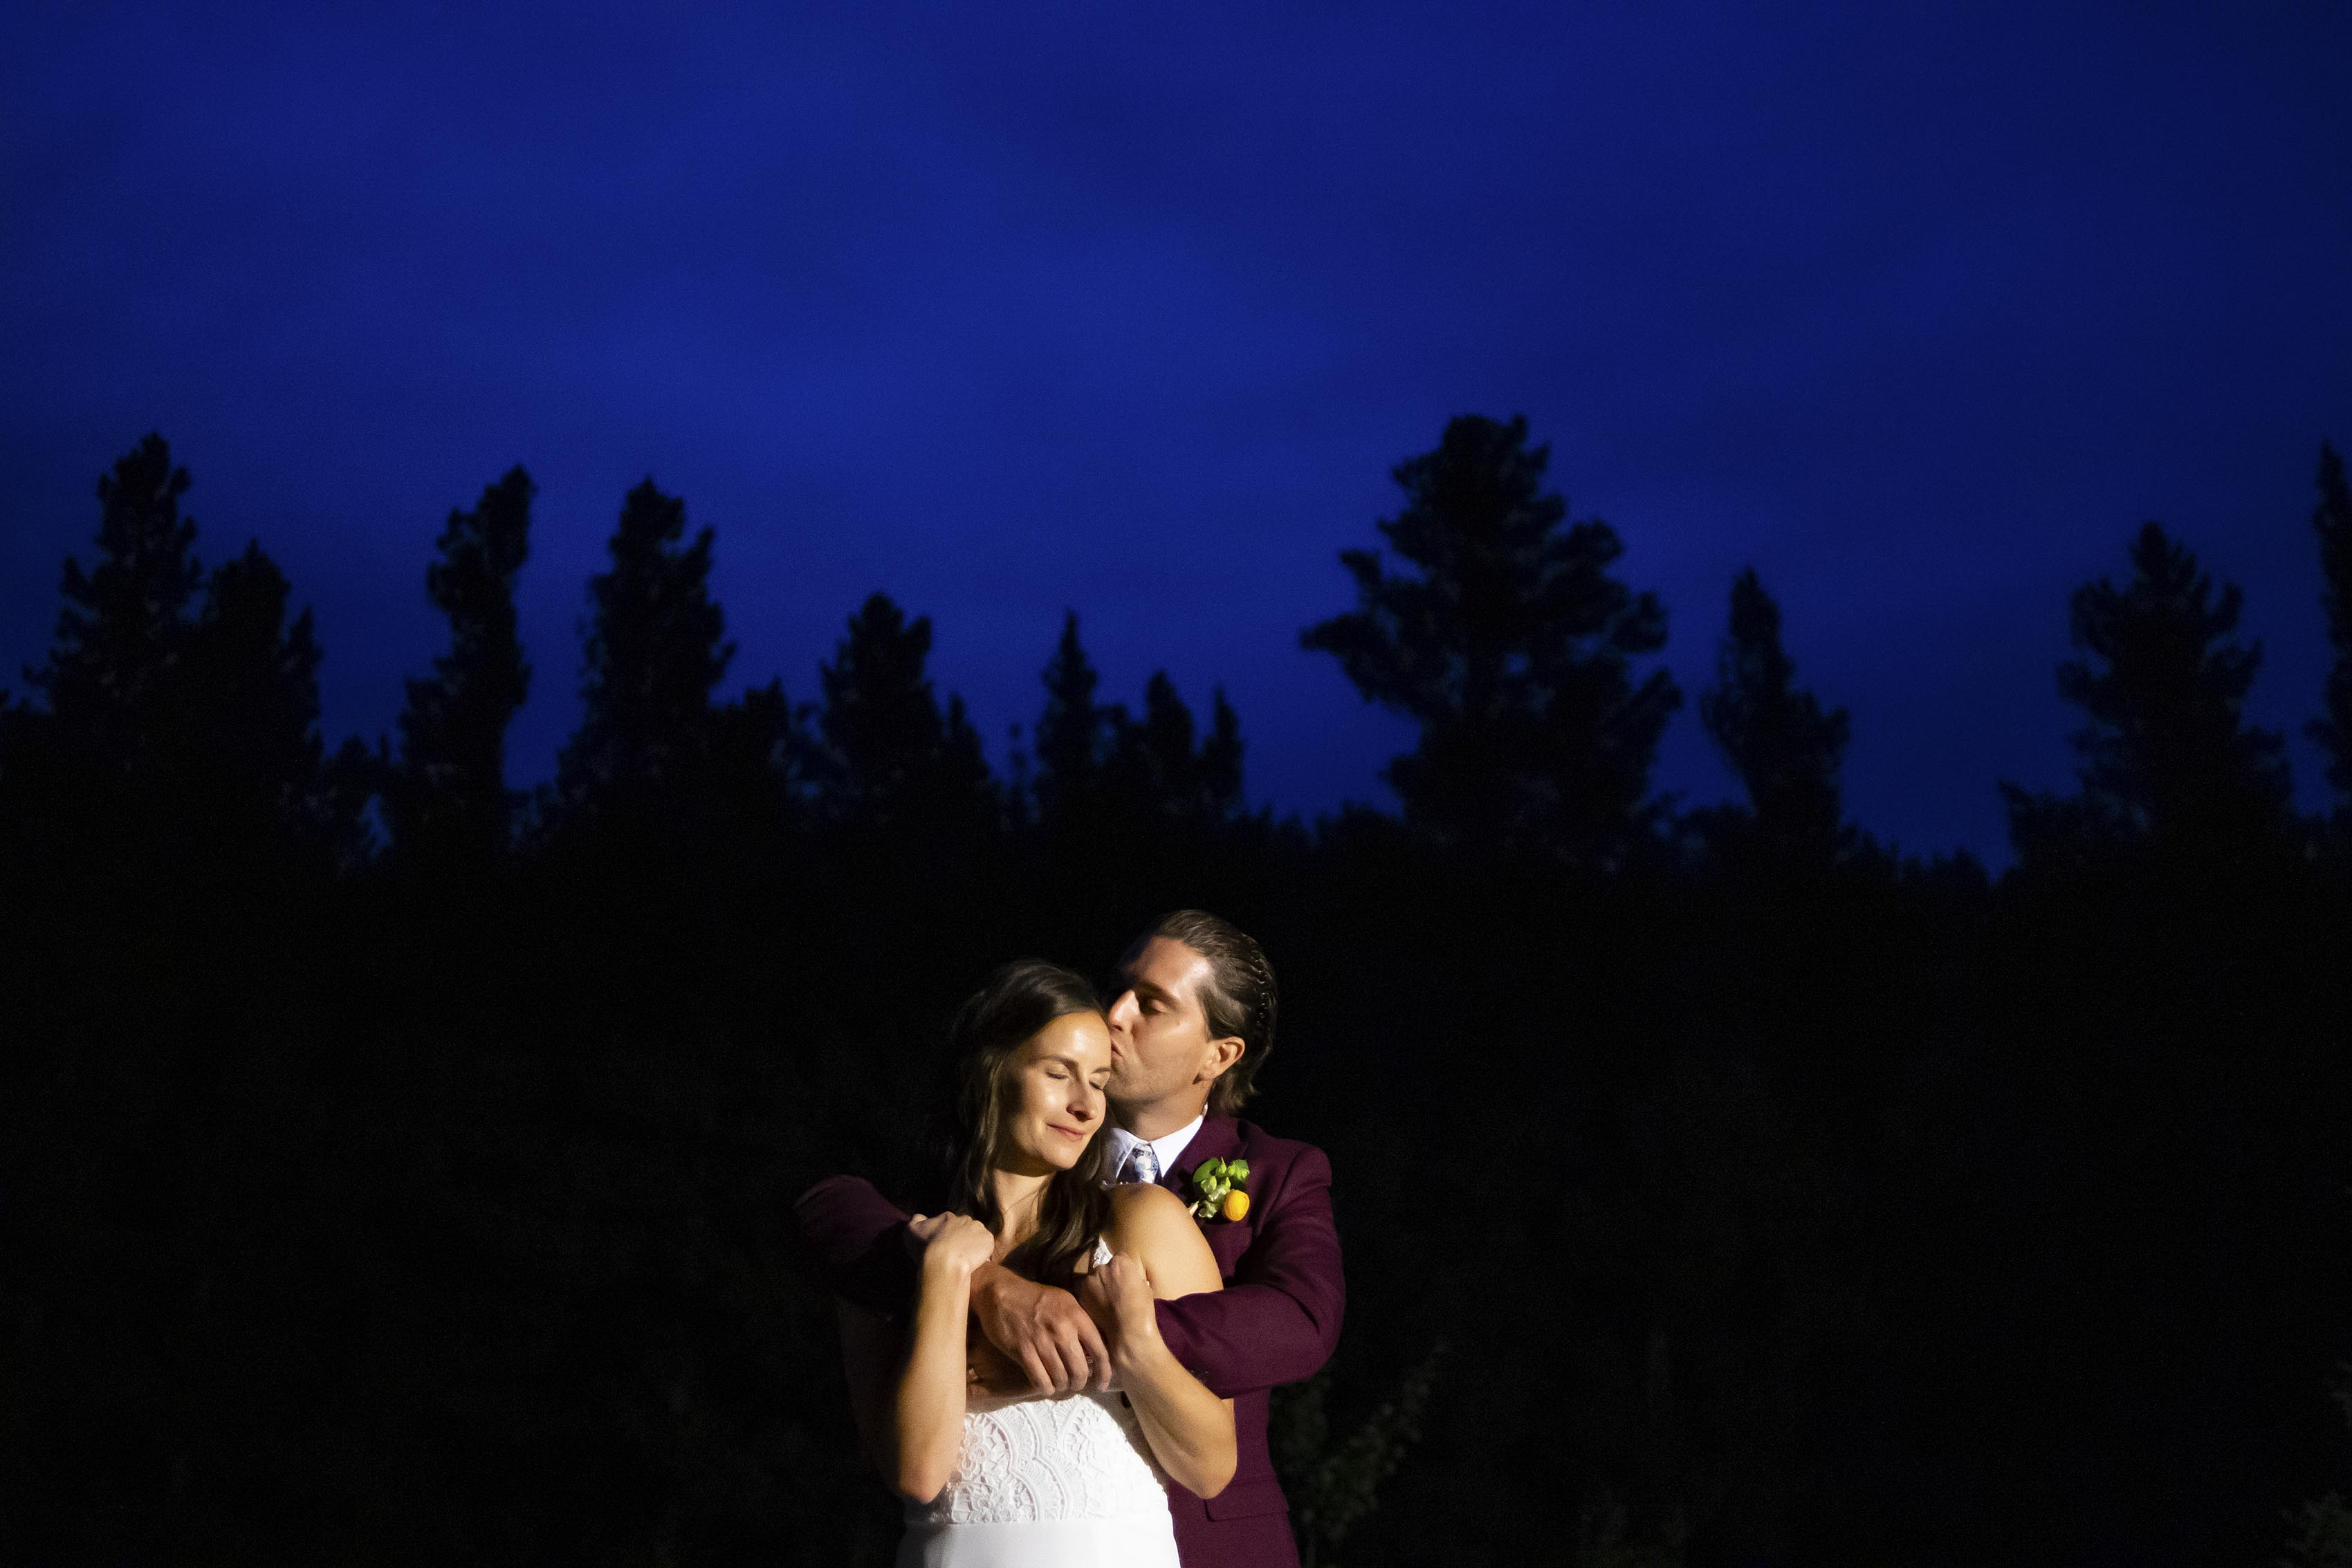 Chris kisses Marla under the twilight sky during their wedding day